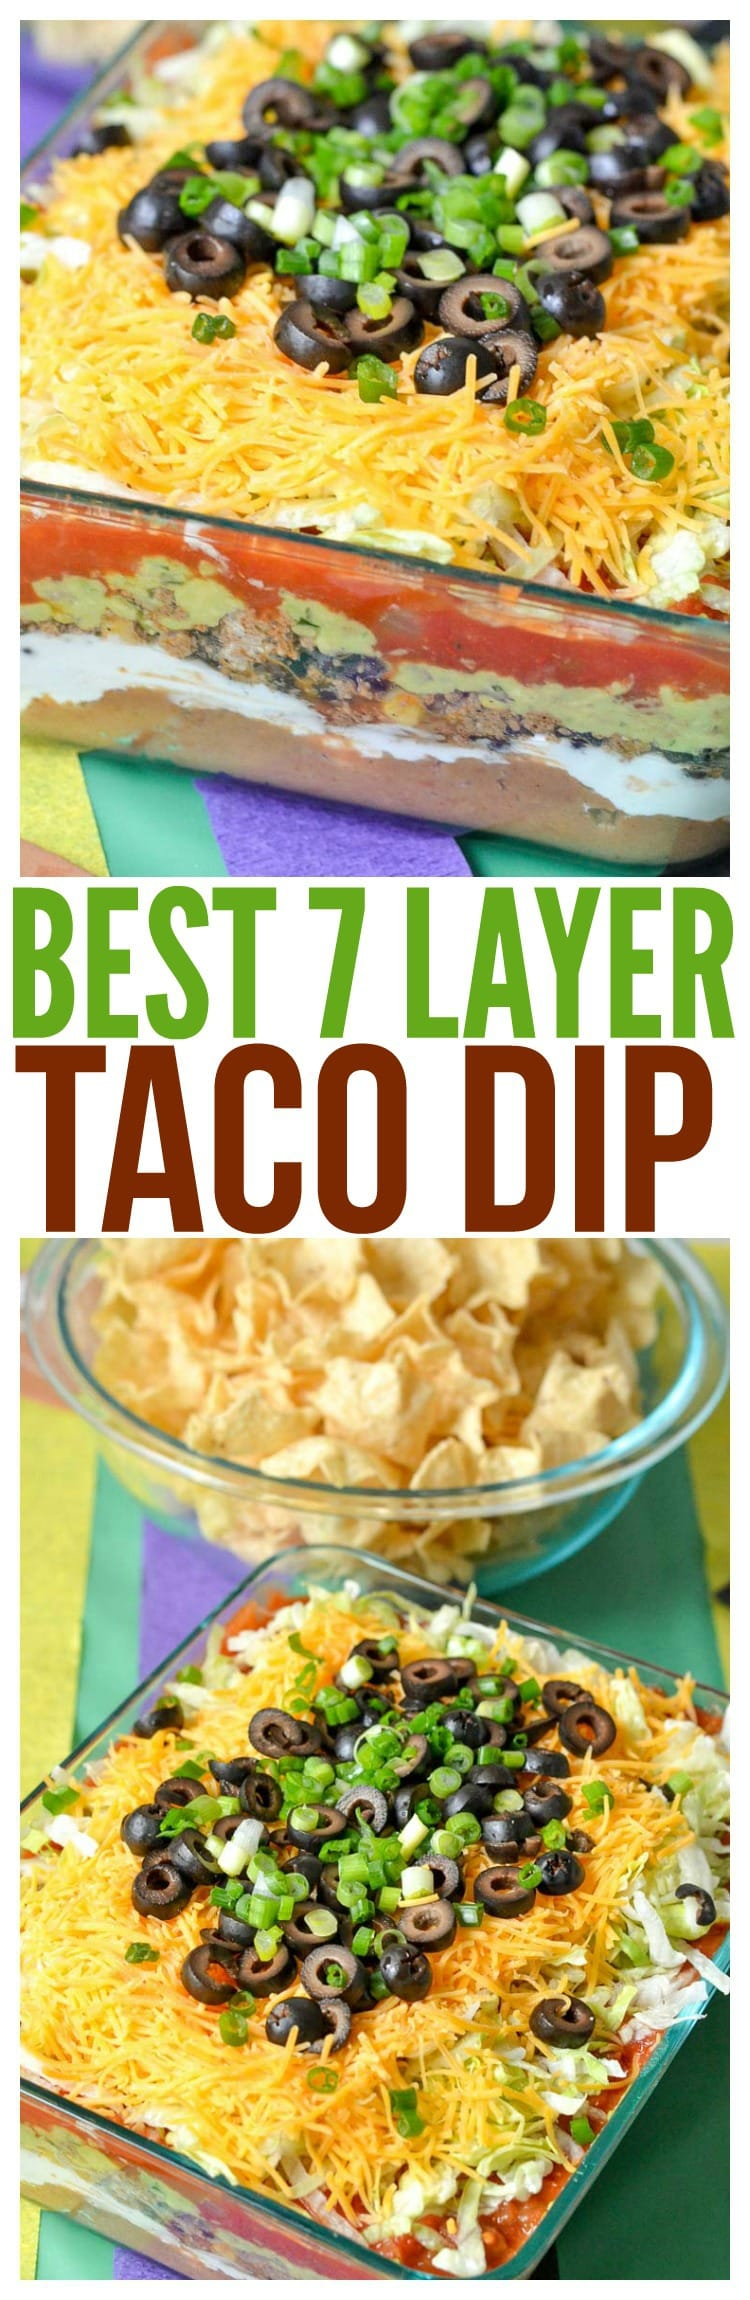 7 layer taco layer dip with meat ground beef mexican easy recipe game day party plan dessert cups mini ideas candy bars skittles popcorn